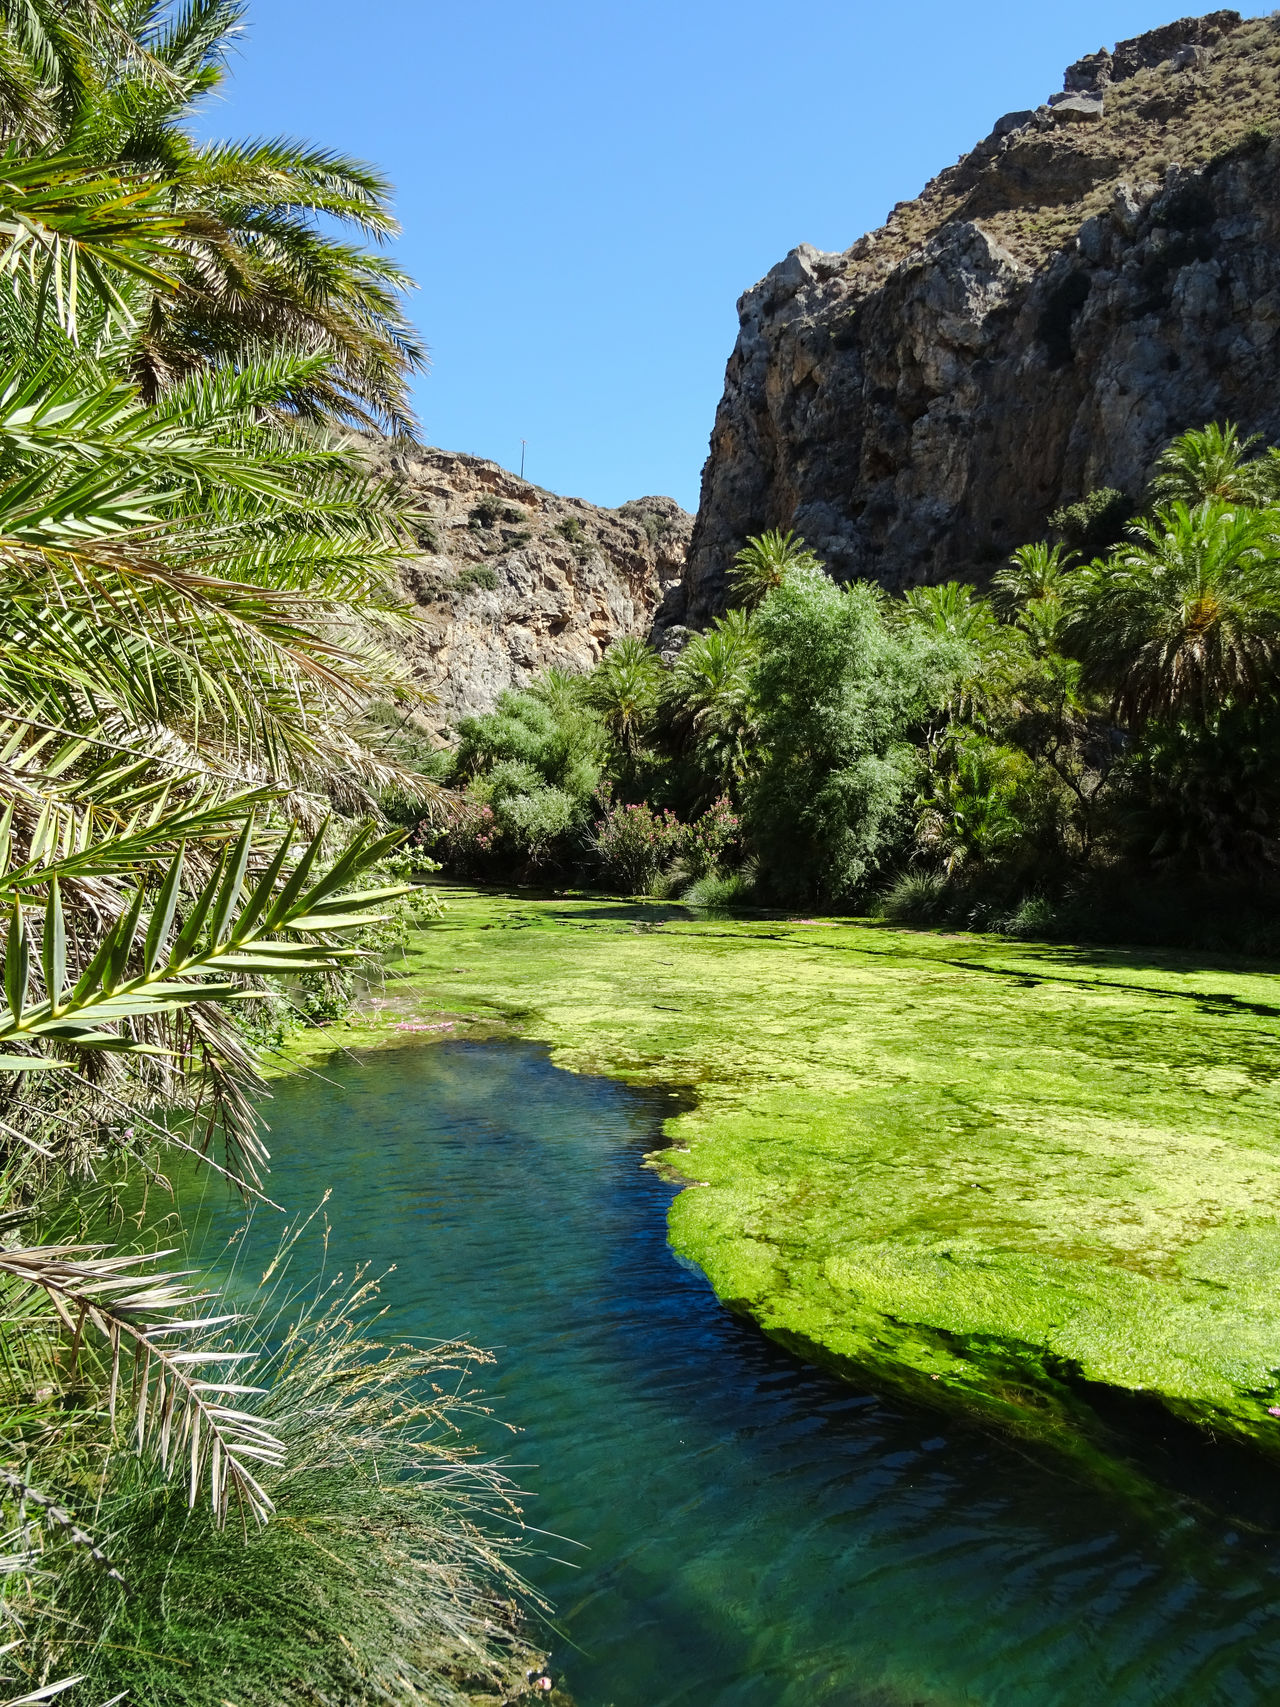 Crete Forest Greece June 2016 Palm Palm Forest Palm Tree Preveli Preveli Beach River Rocks Rocks And Water Travel Water